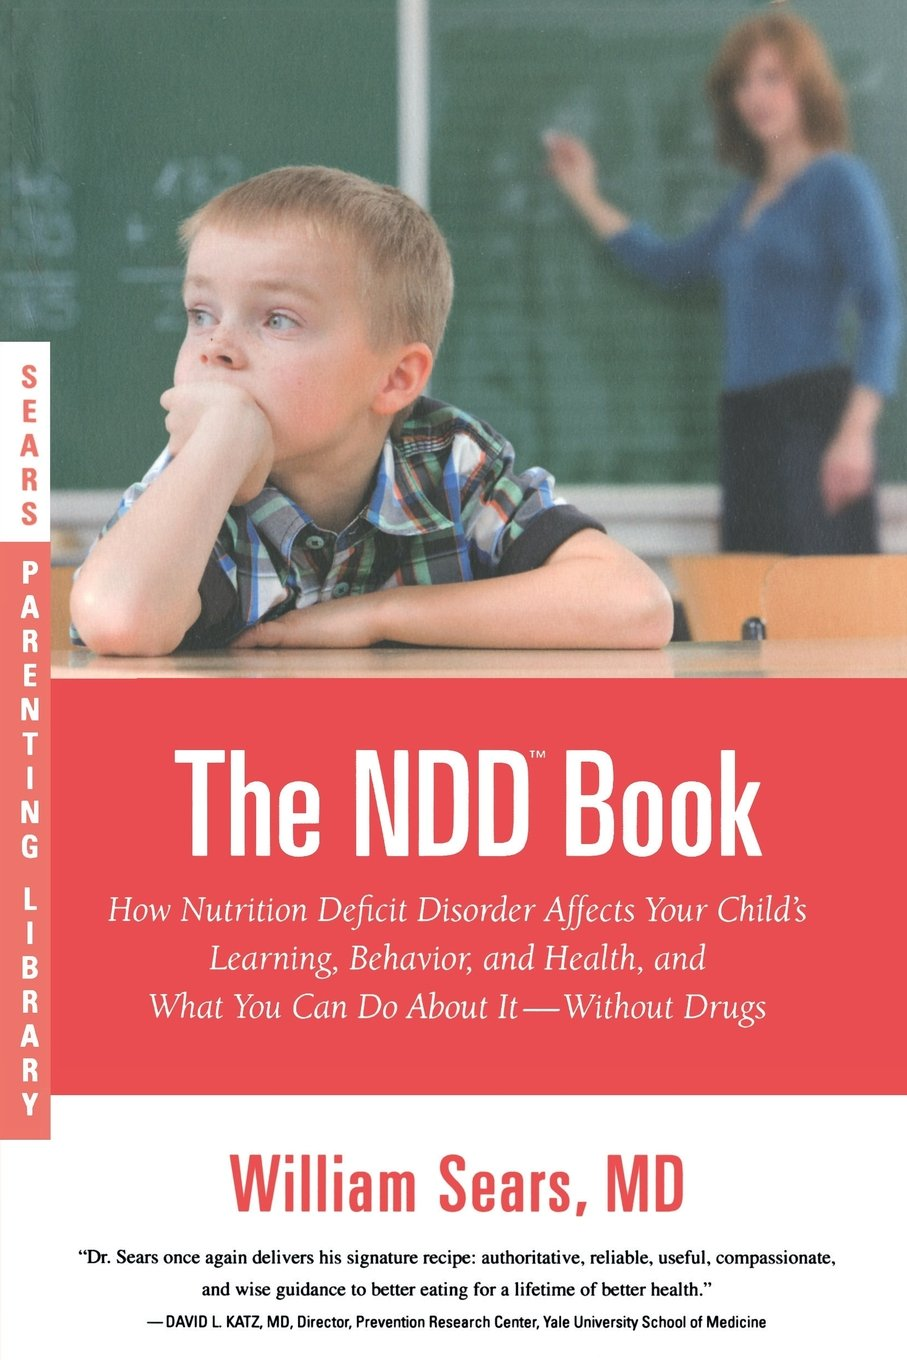 The N.D.D. Book: How Nutrition Deficit Disorder Affects Your Child's Learning, Behavior, and Health, and What You Can Do About It--Without Drugs (Sears Parenting Library) pdf